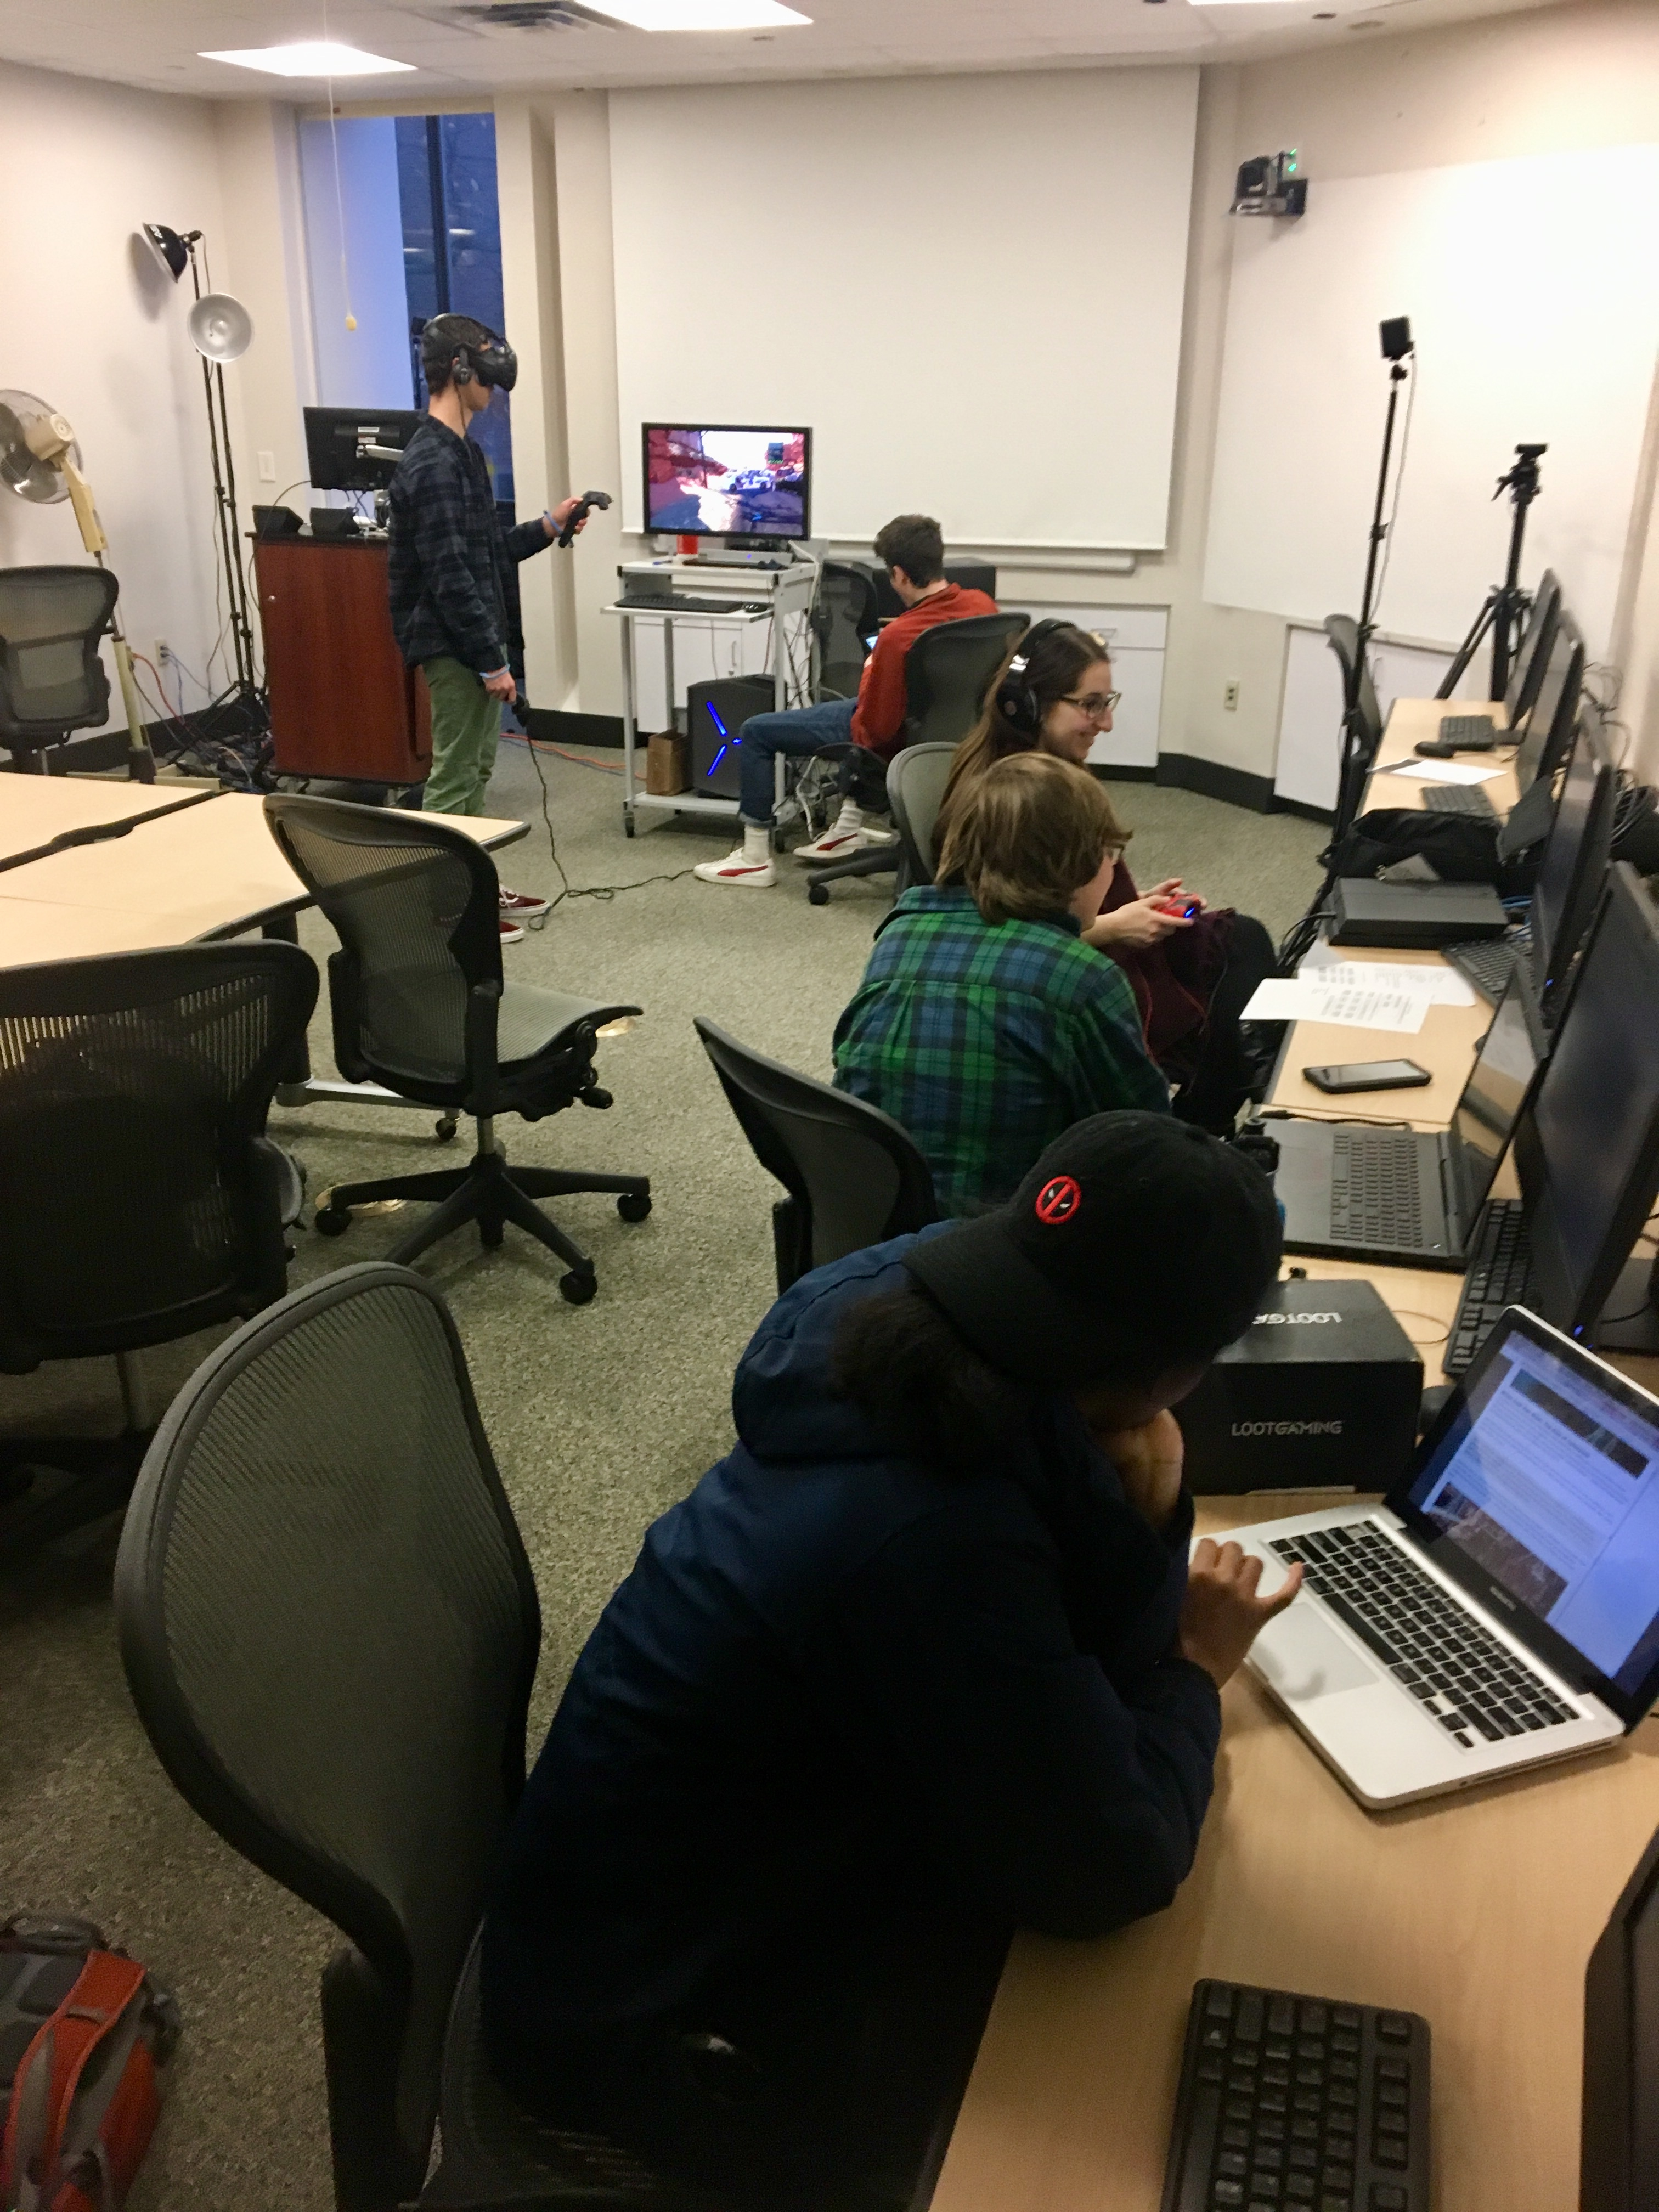 A room of students use virtual reality headsets in a classroom